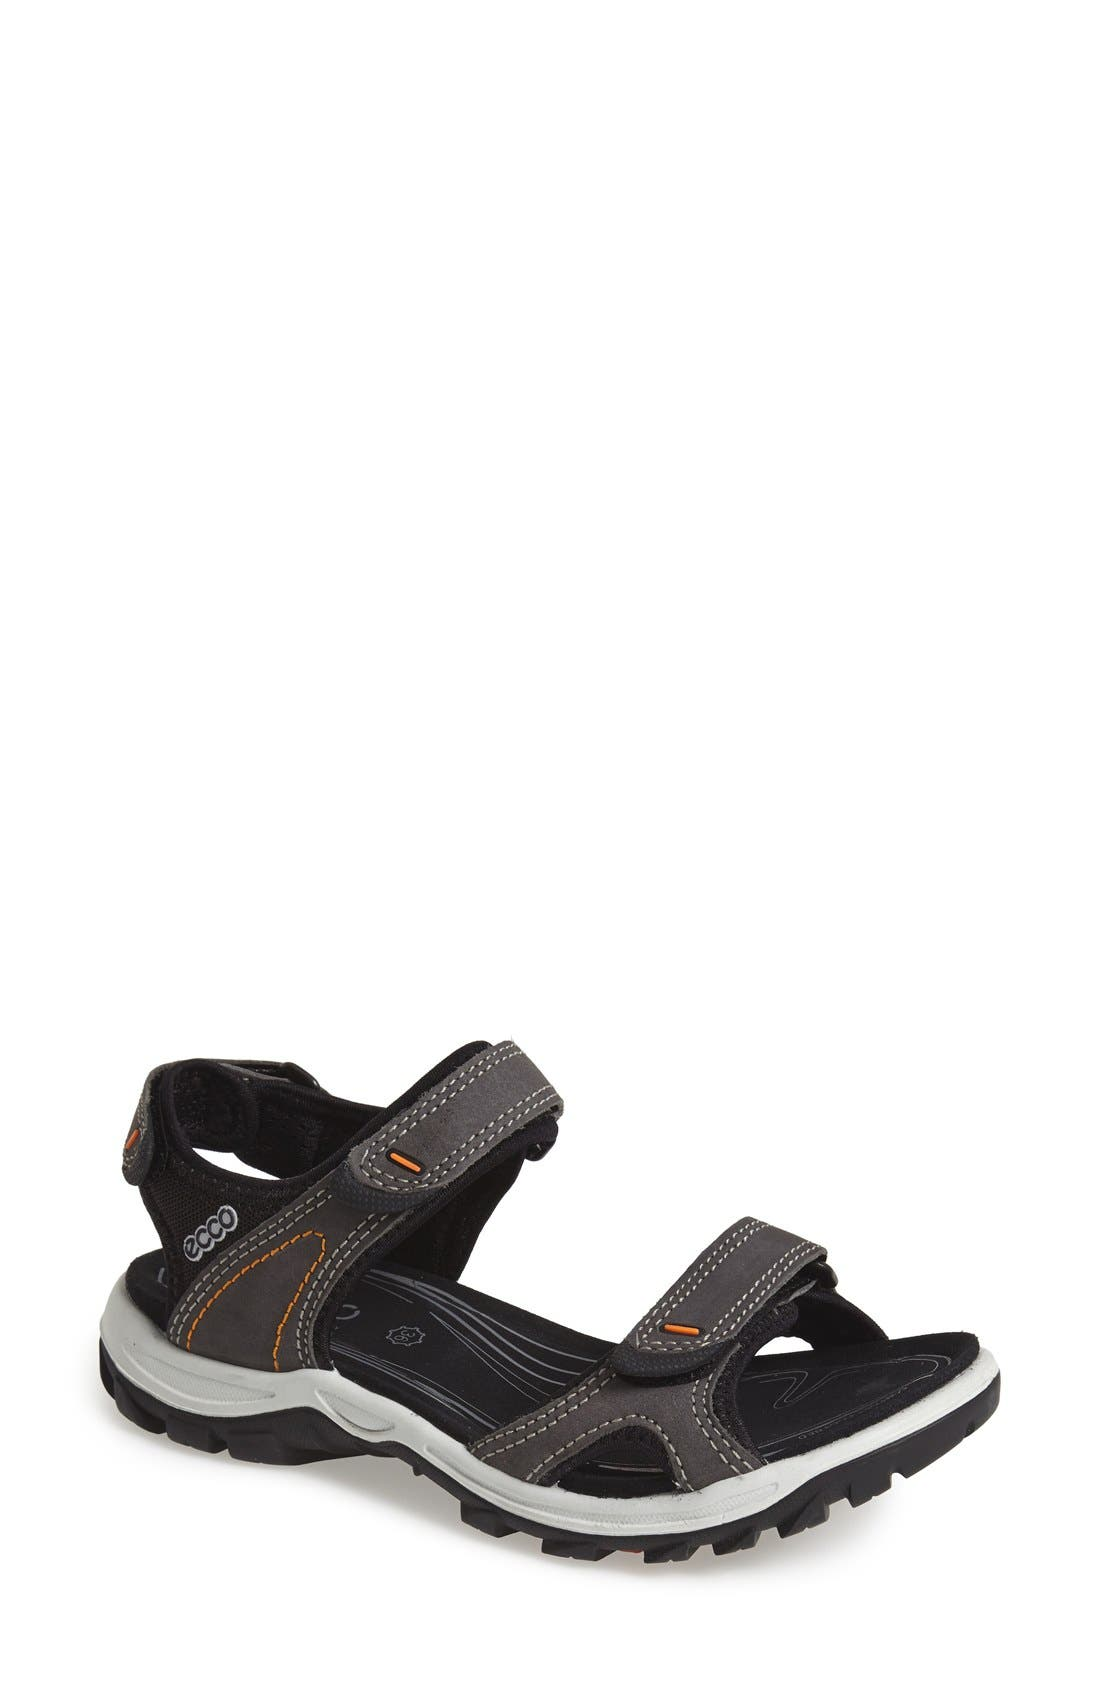 'Offroad' Lightweight Sandal,                             Main thumbnail 1, color,